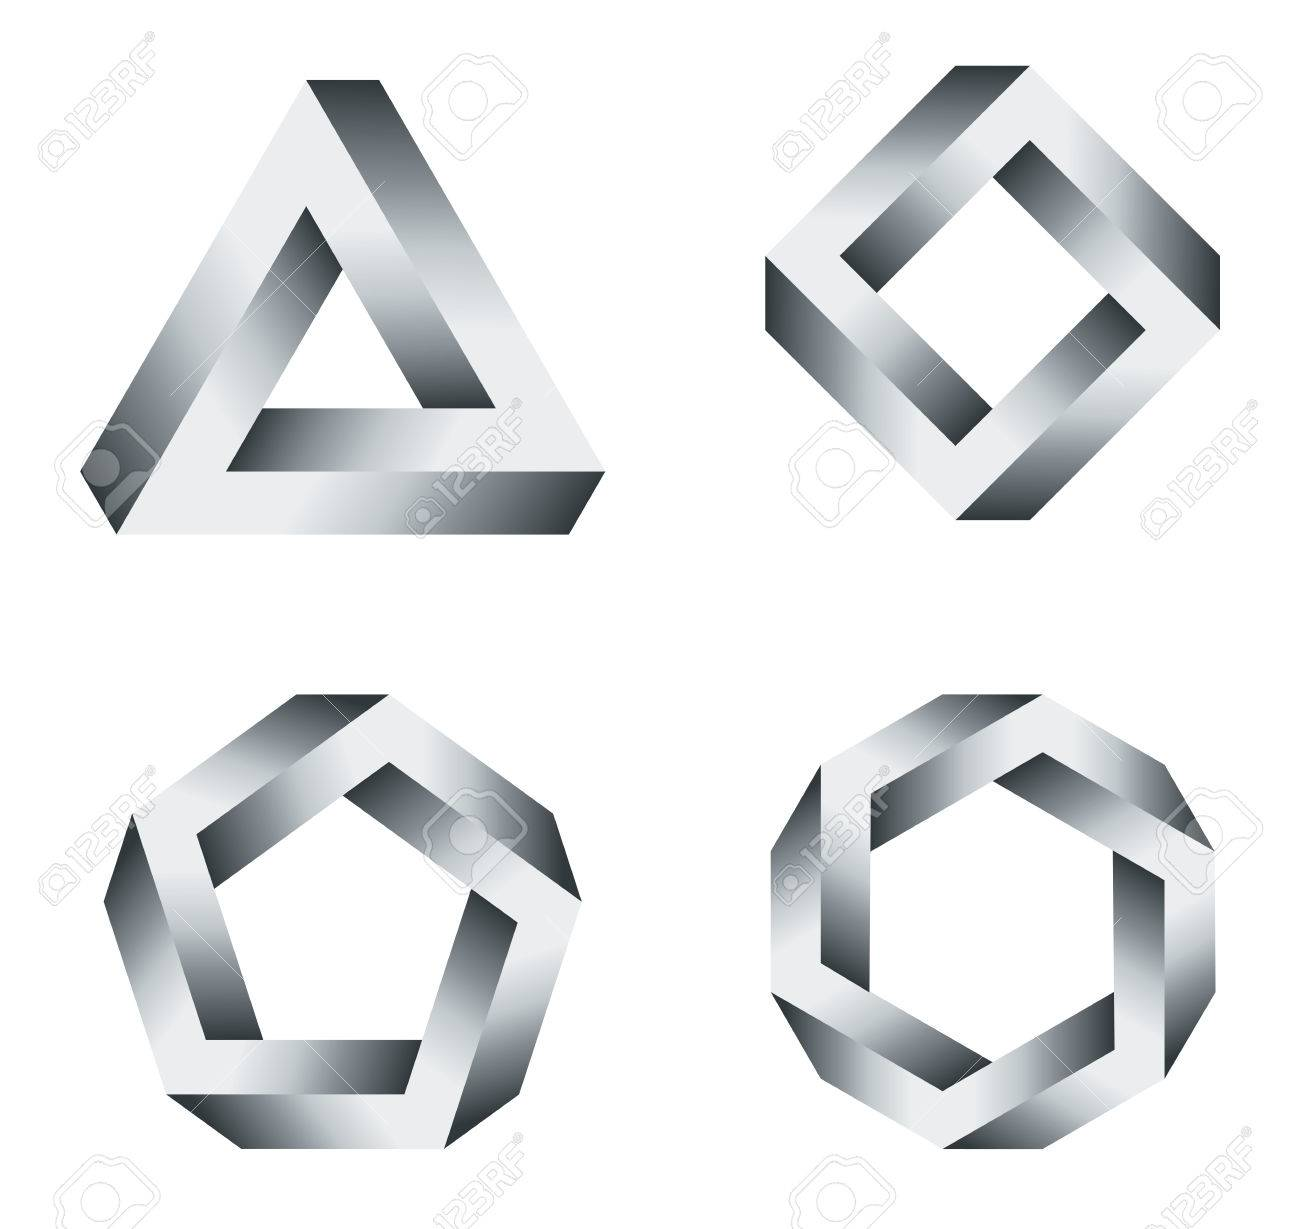 Pen Rose Triangle And Polygons With Black And White Gradients ... for Triangle Objects Clipart Black And White  269ane